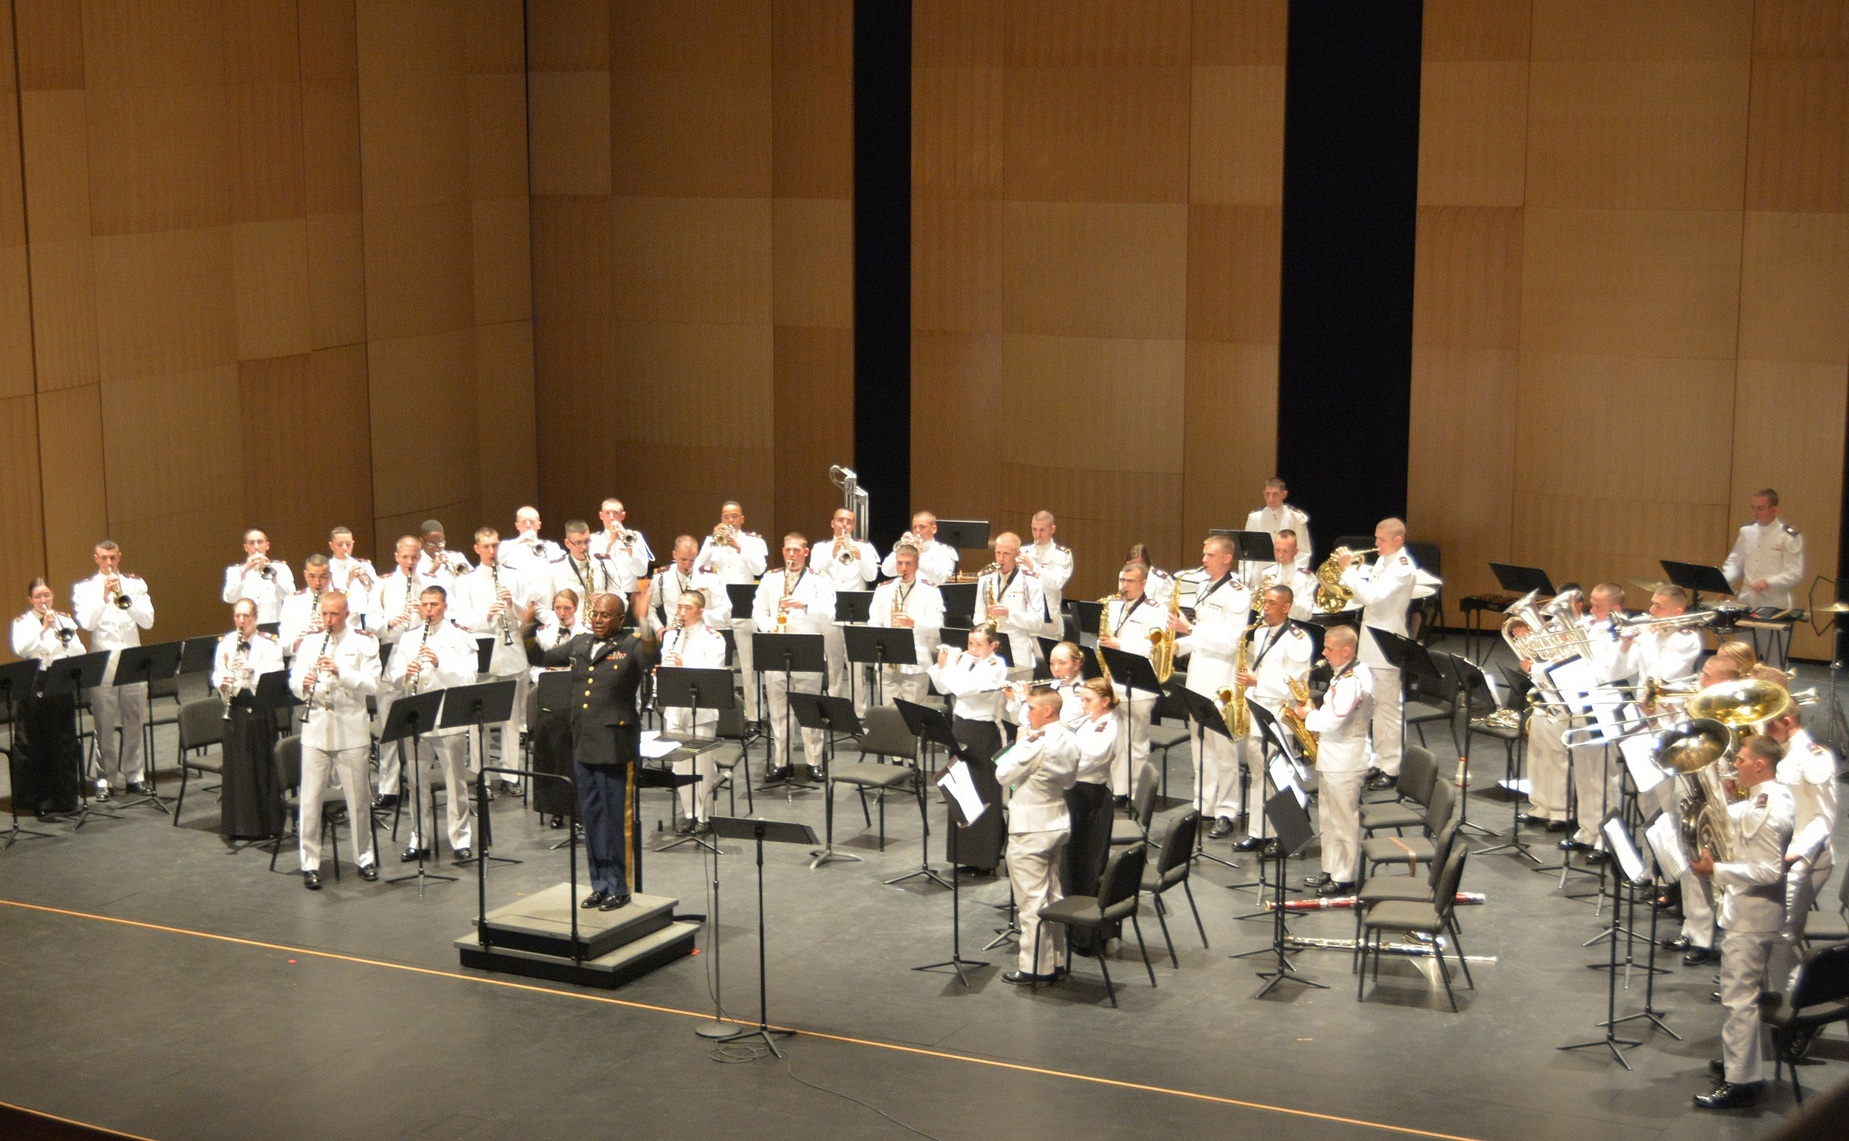 The Concert Band of the Highty-Tighties, the Virginia Tech Corps of Cadets Regimental Band, perform their annual spring concert in the Moss Arts Center.